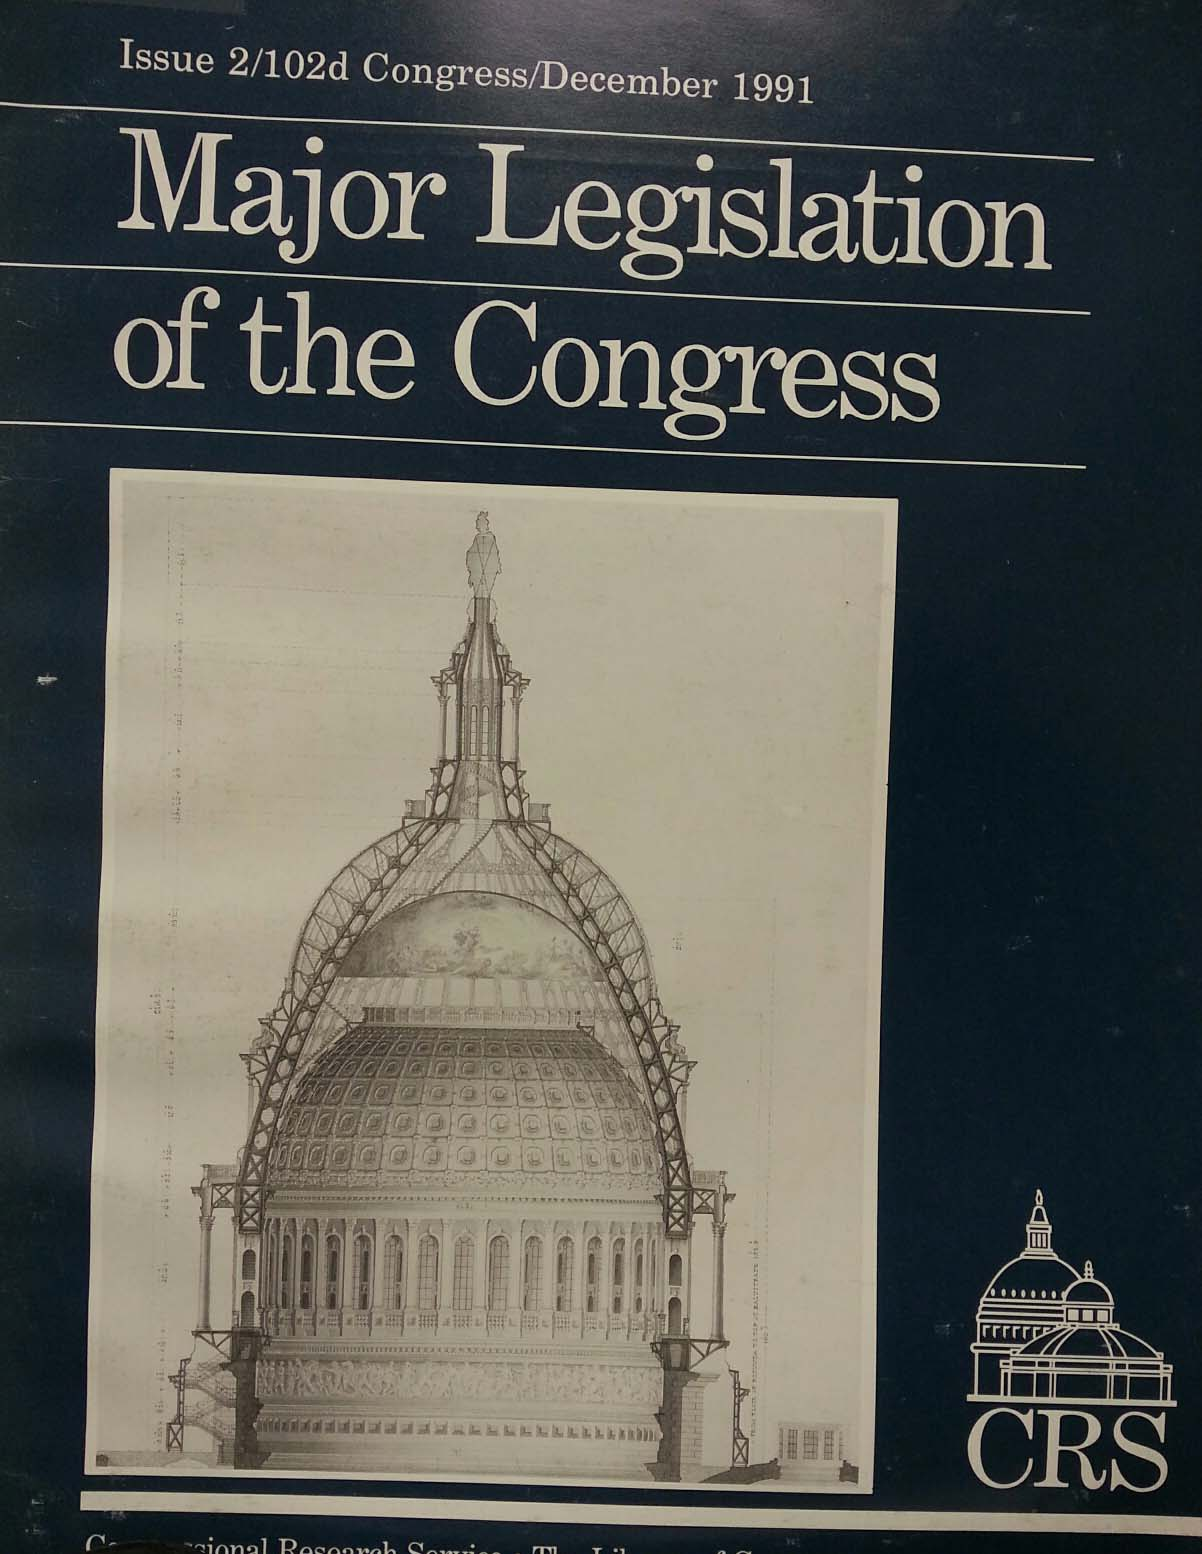 Major legislation of the Congress